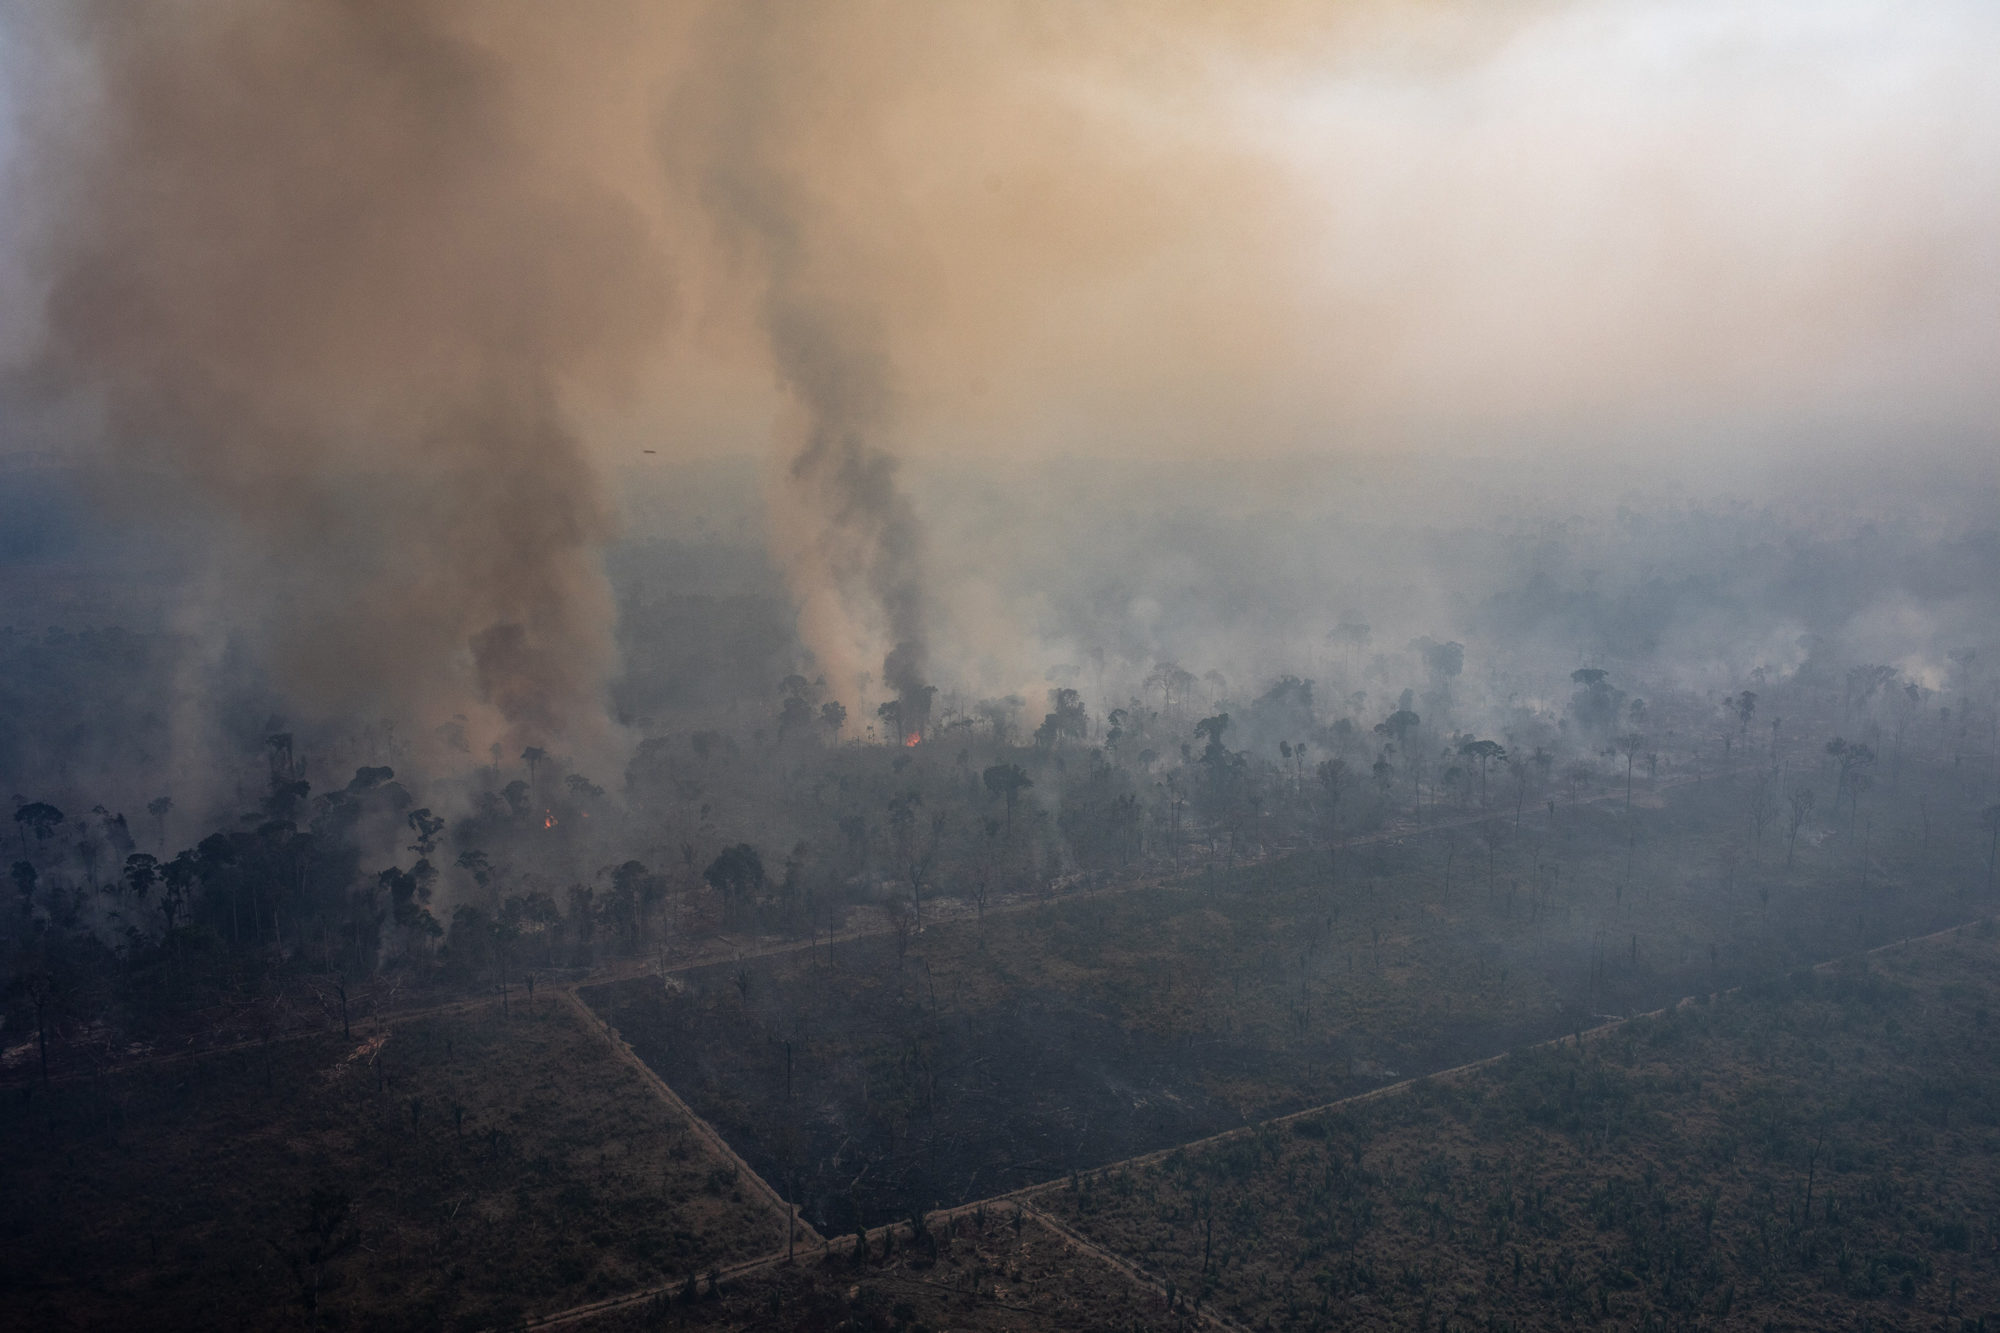 If Carbon Offsets Require Forests to Stay Standing, What Happens When the Amazon Is on Fire?